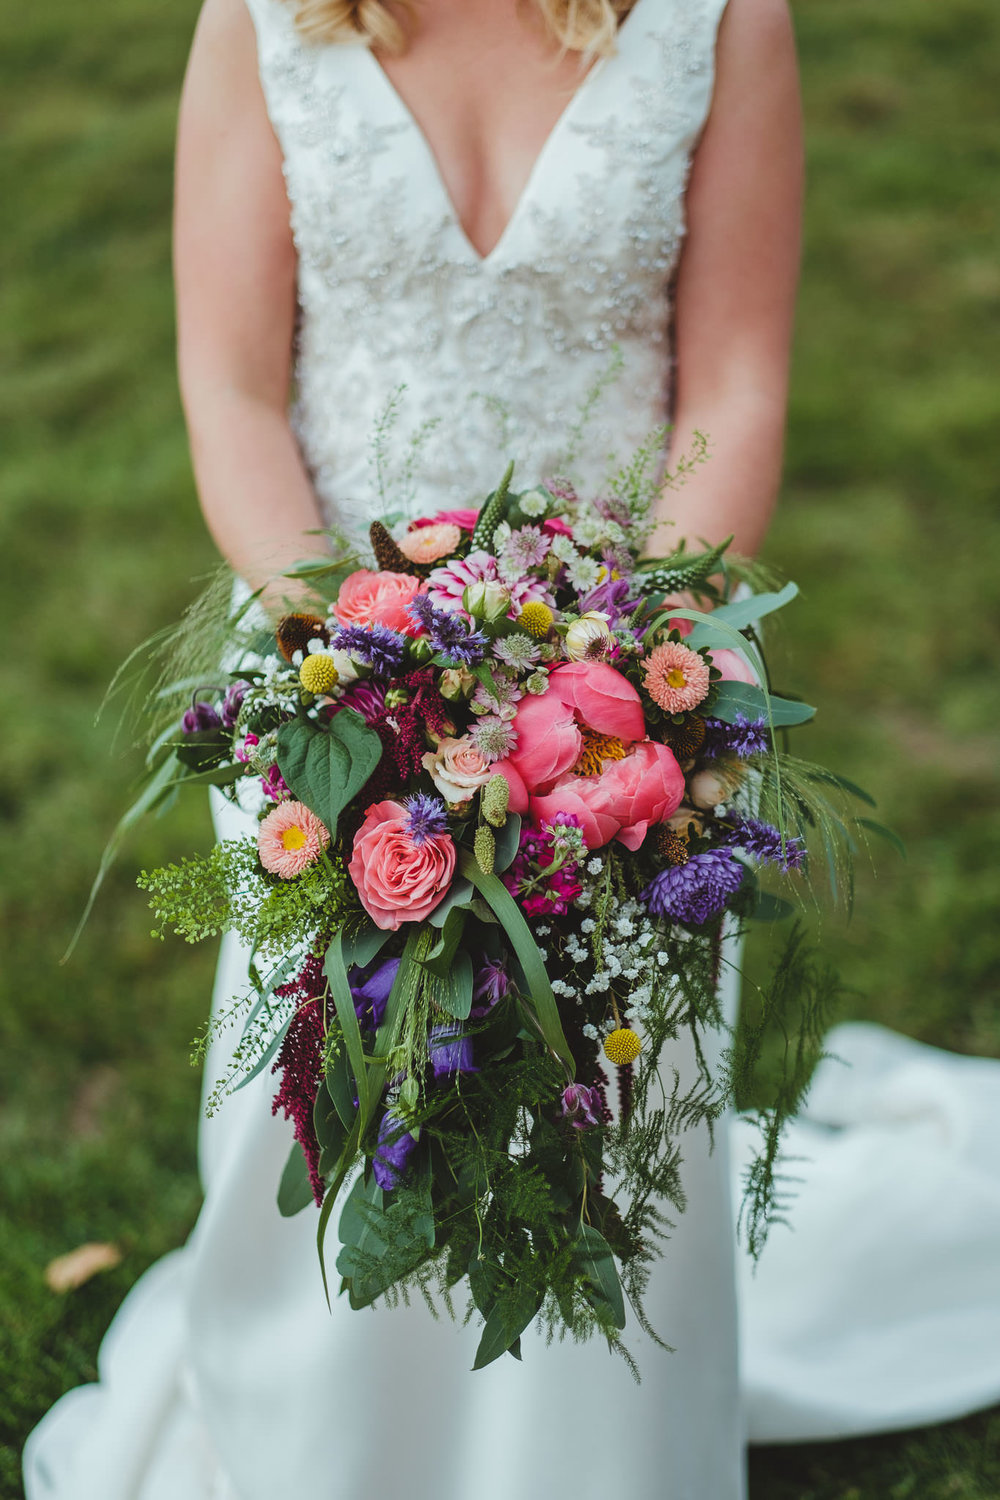 A close up of the colourful bride's flowers